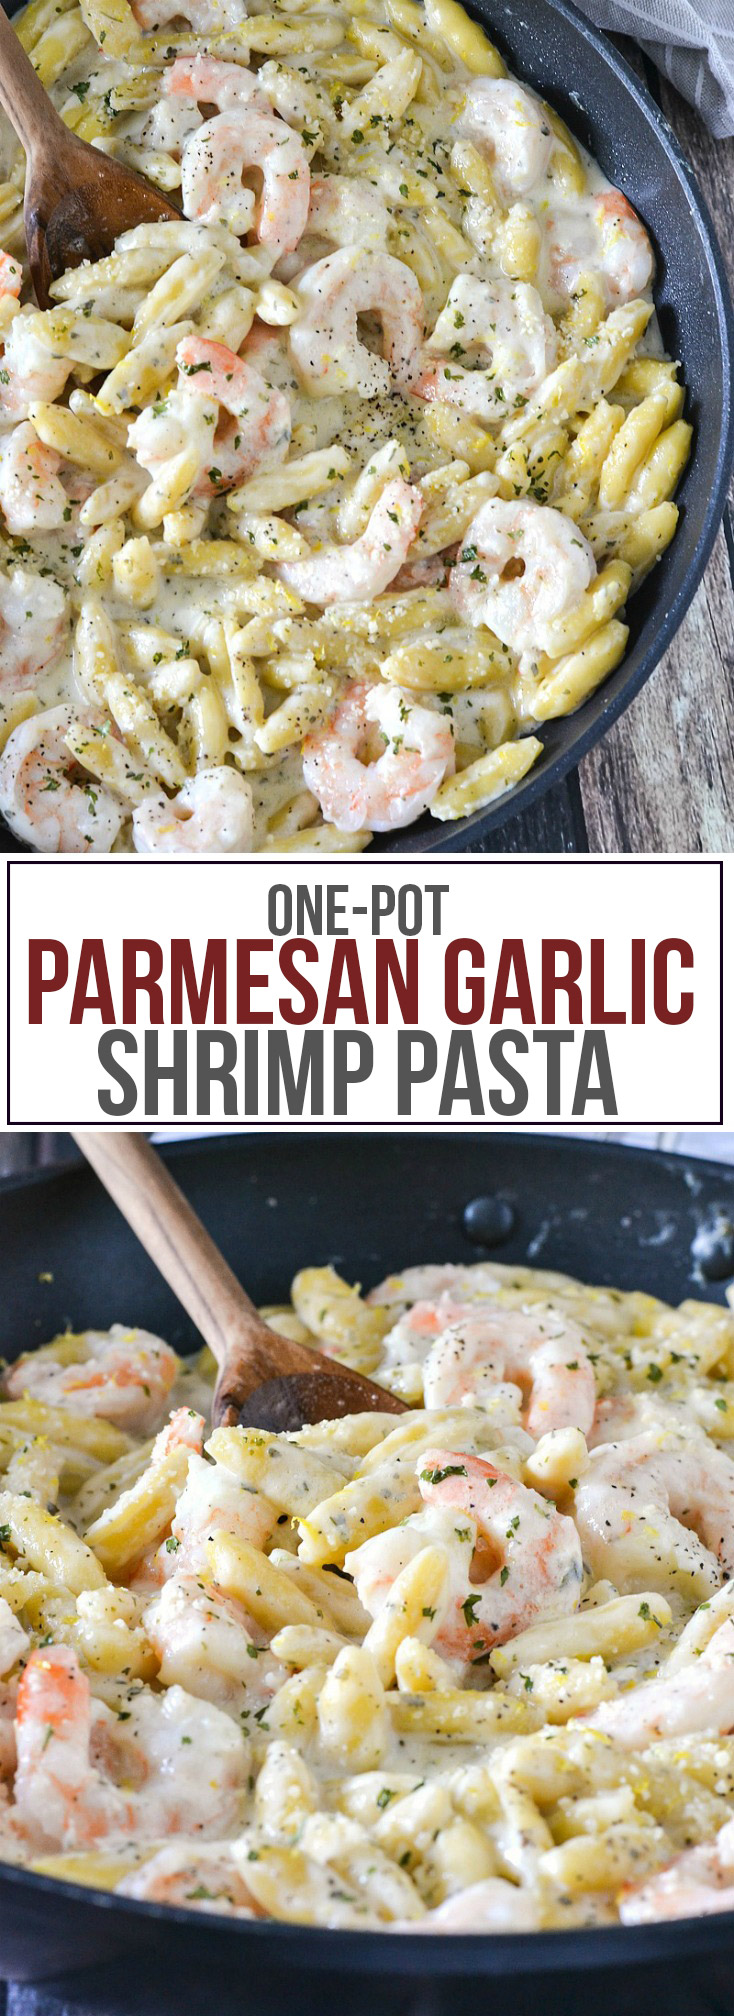 One-Pot Parmesan Garlic Pasta